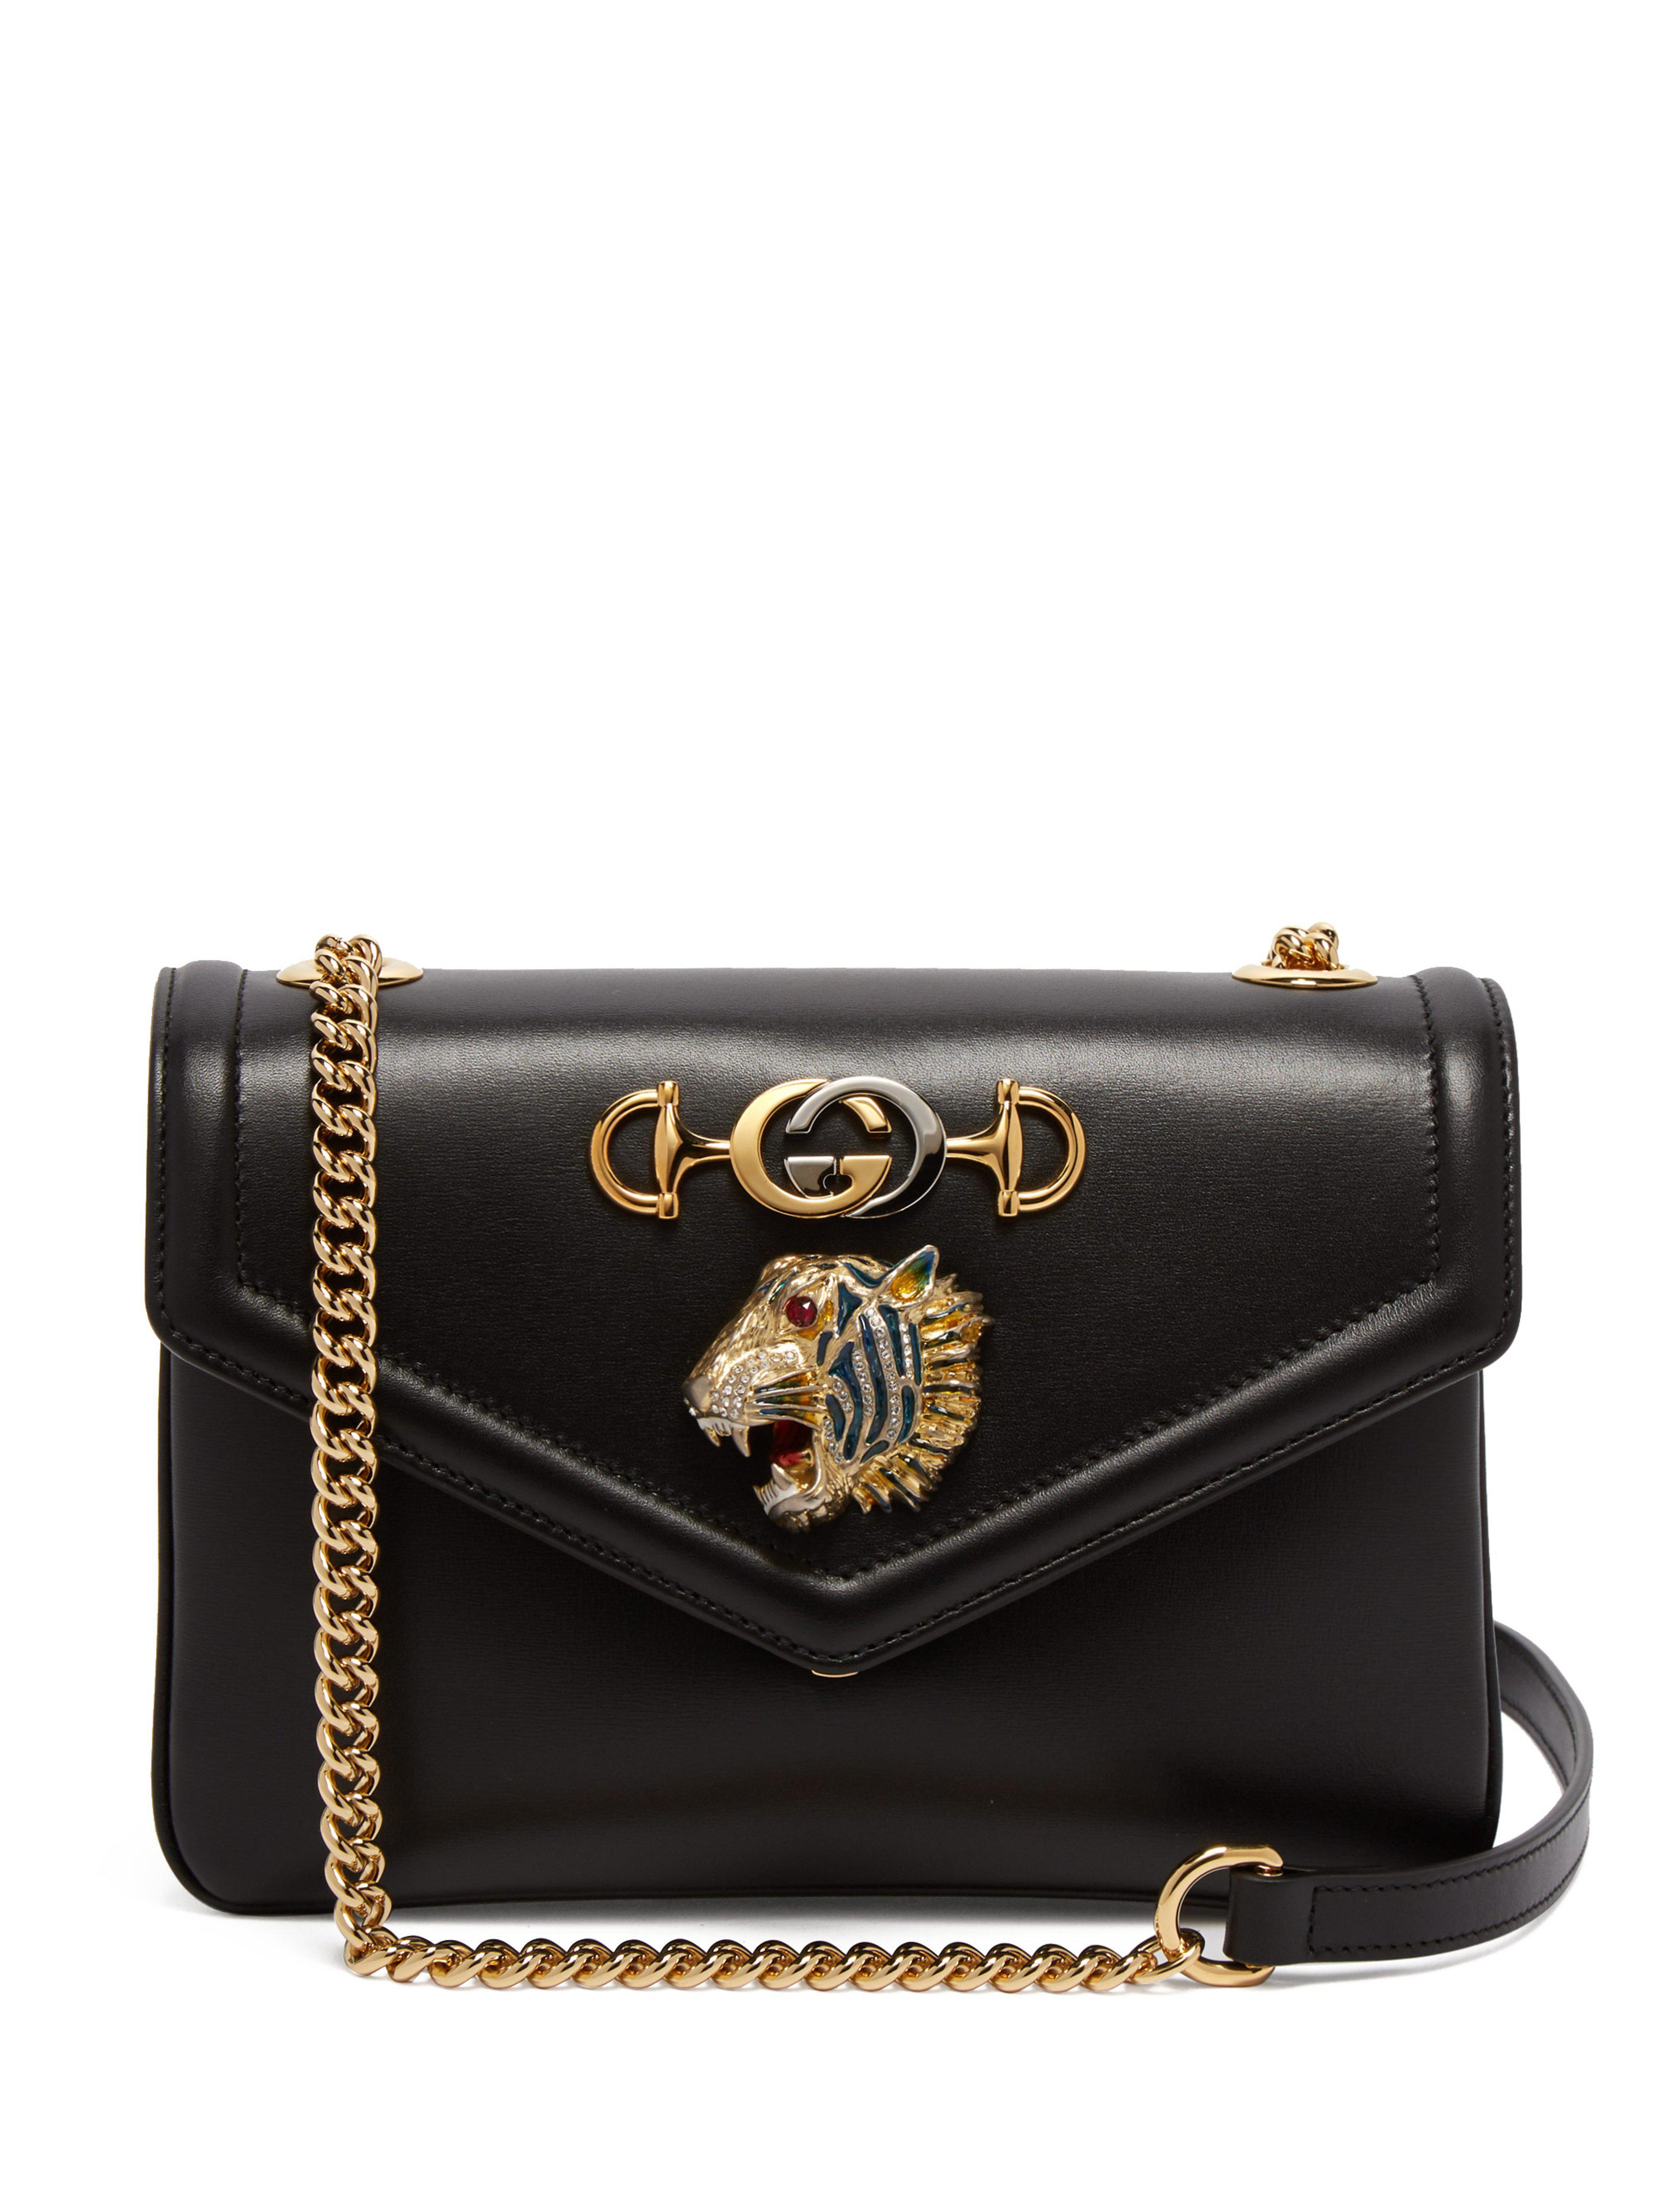 c18512b1f Gucci Small Tiger Leather Bag in Black - Save 21% - Lyst